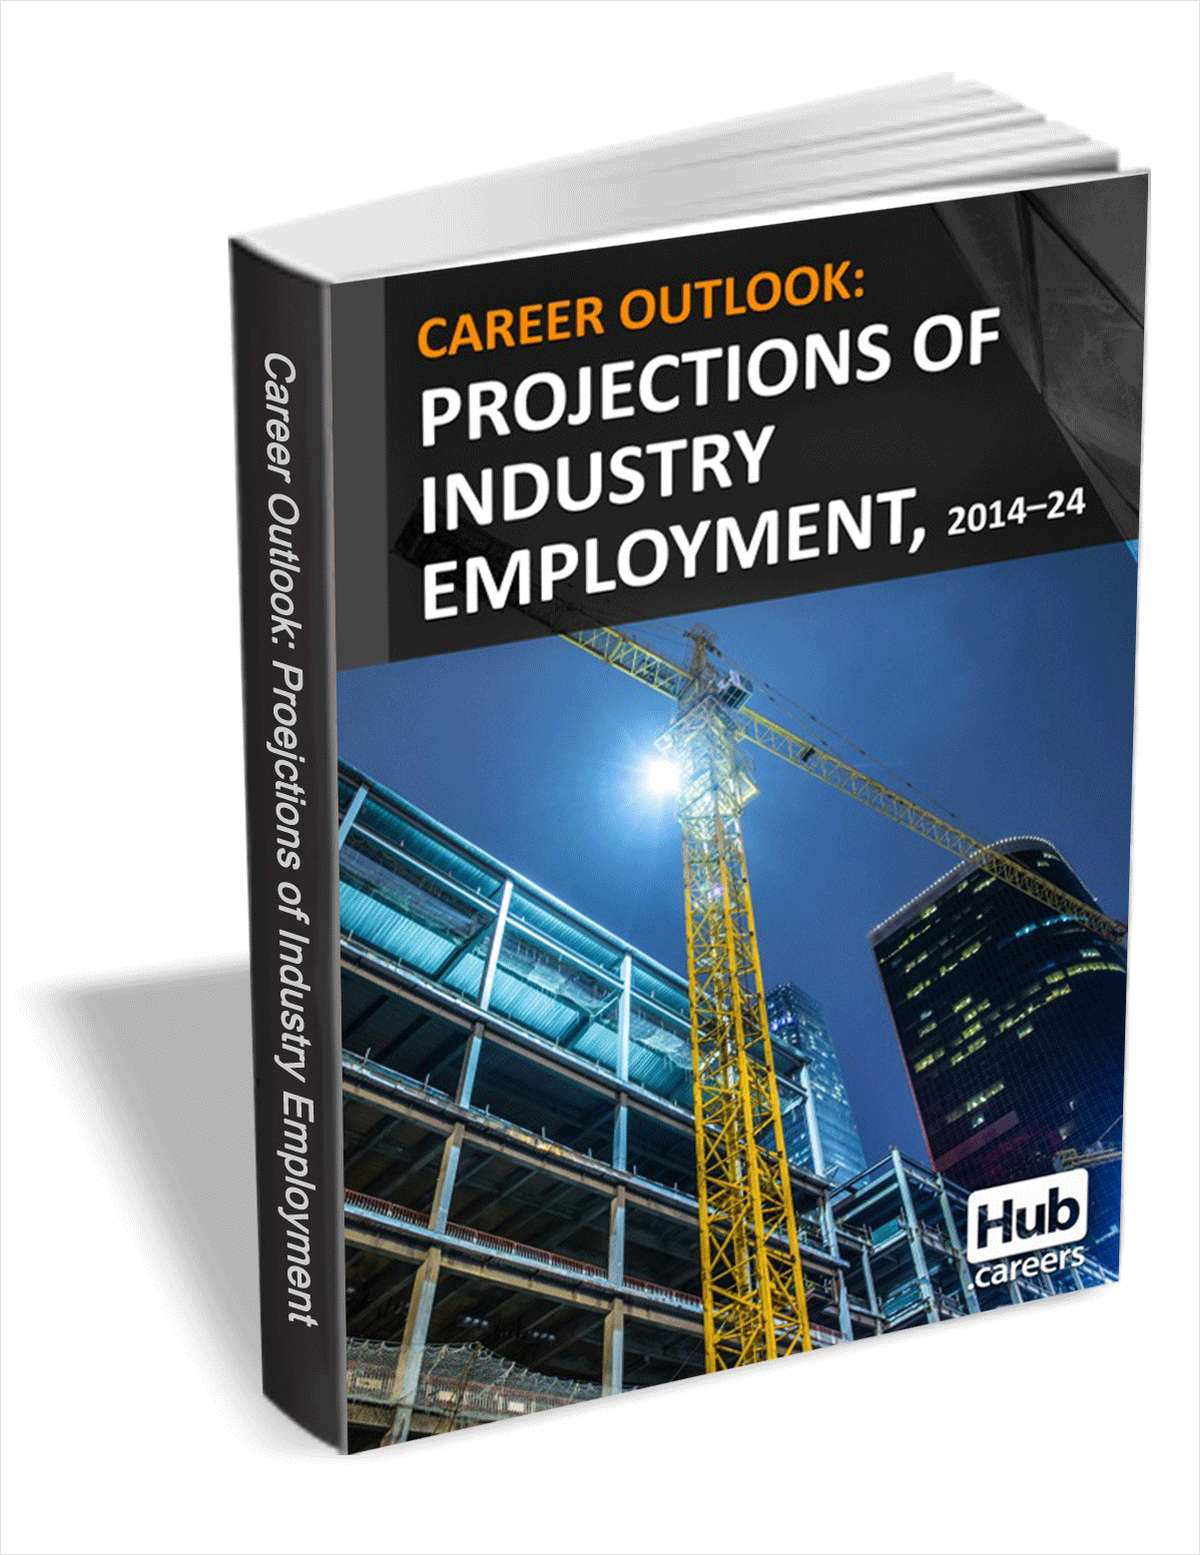 Projections of Industry Employment, 2014-24 - Career Outlook